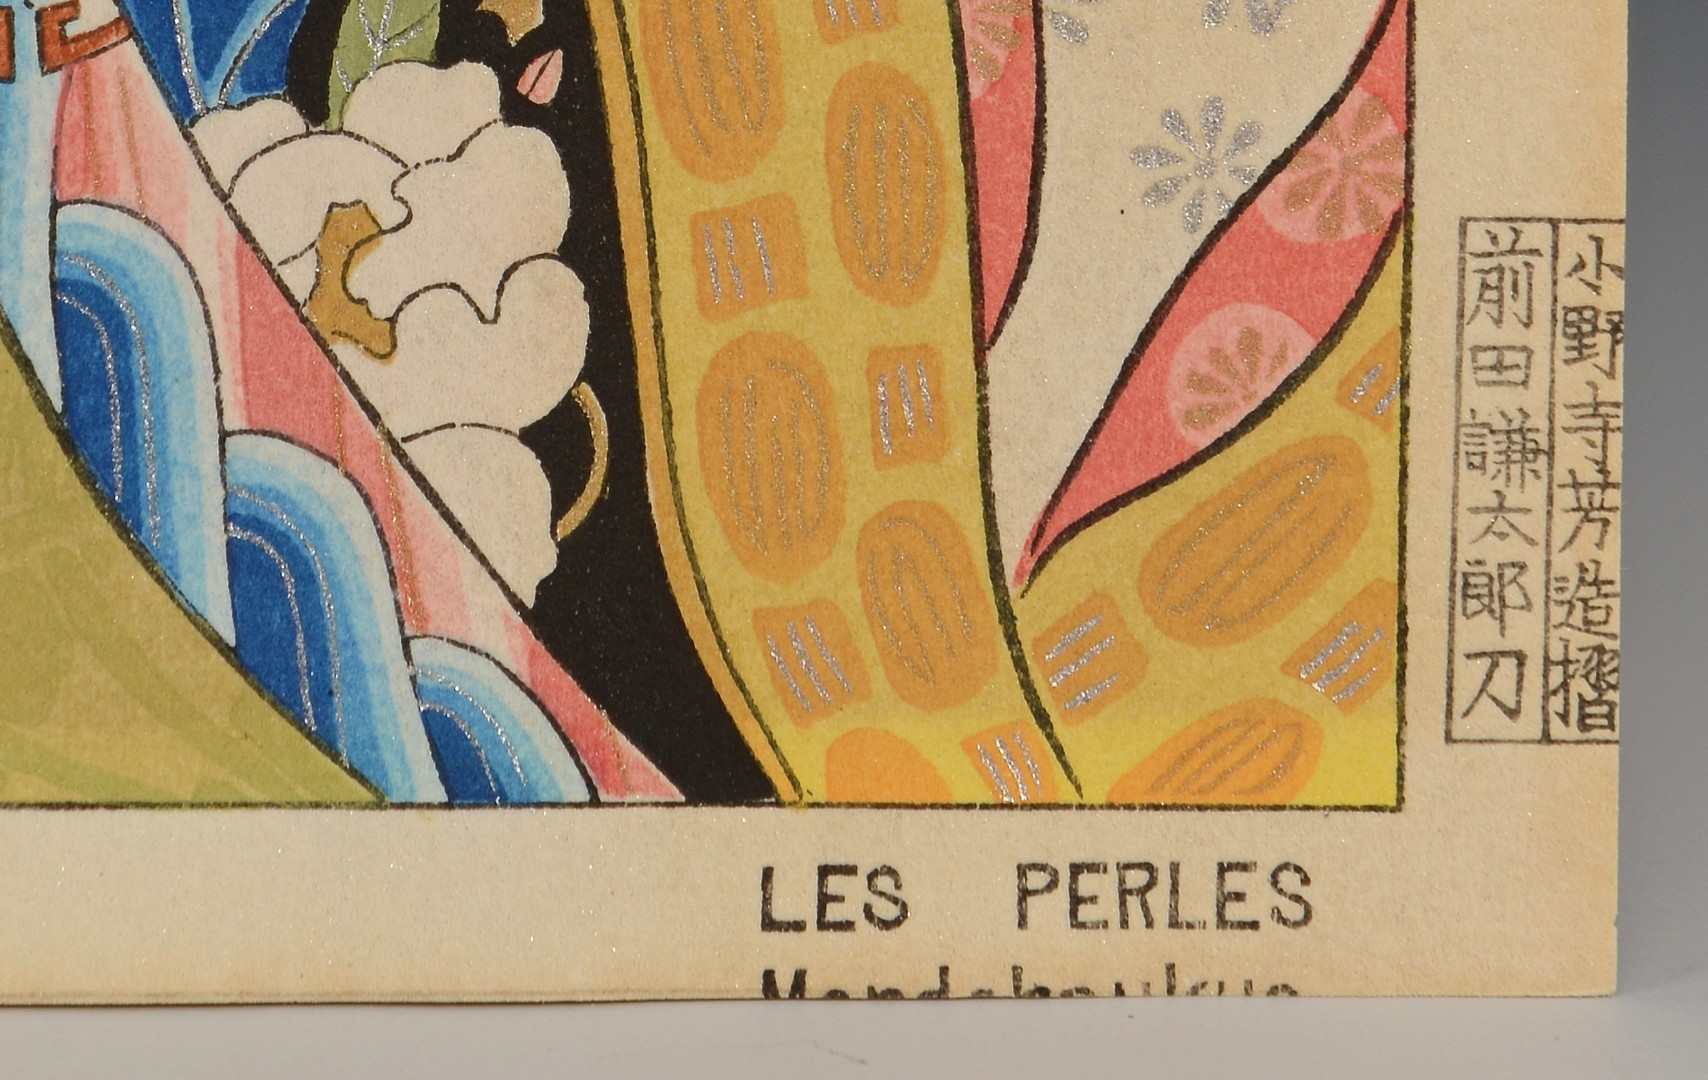 Lot 3832401: Paul Jacoulet woodblock, Les Perles